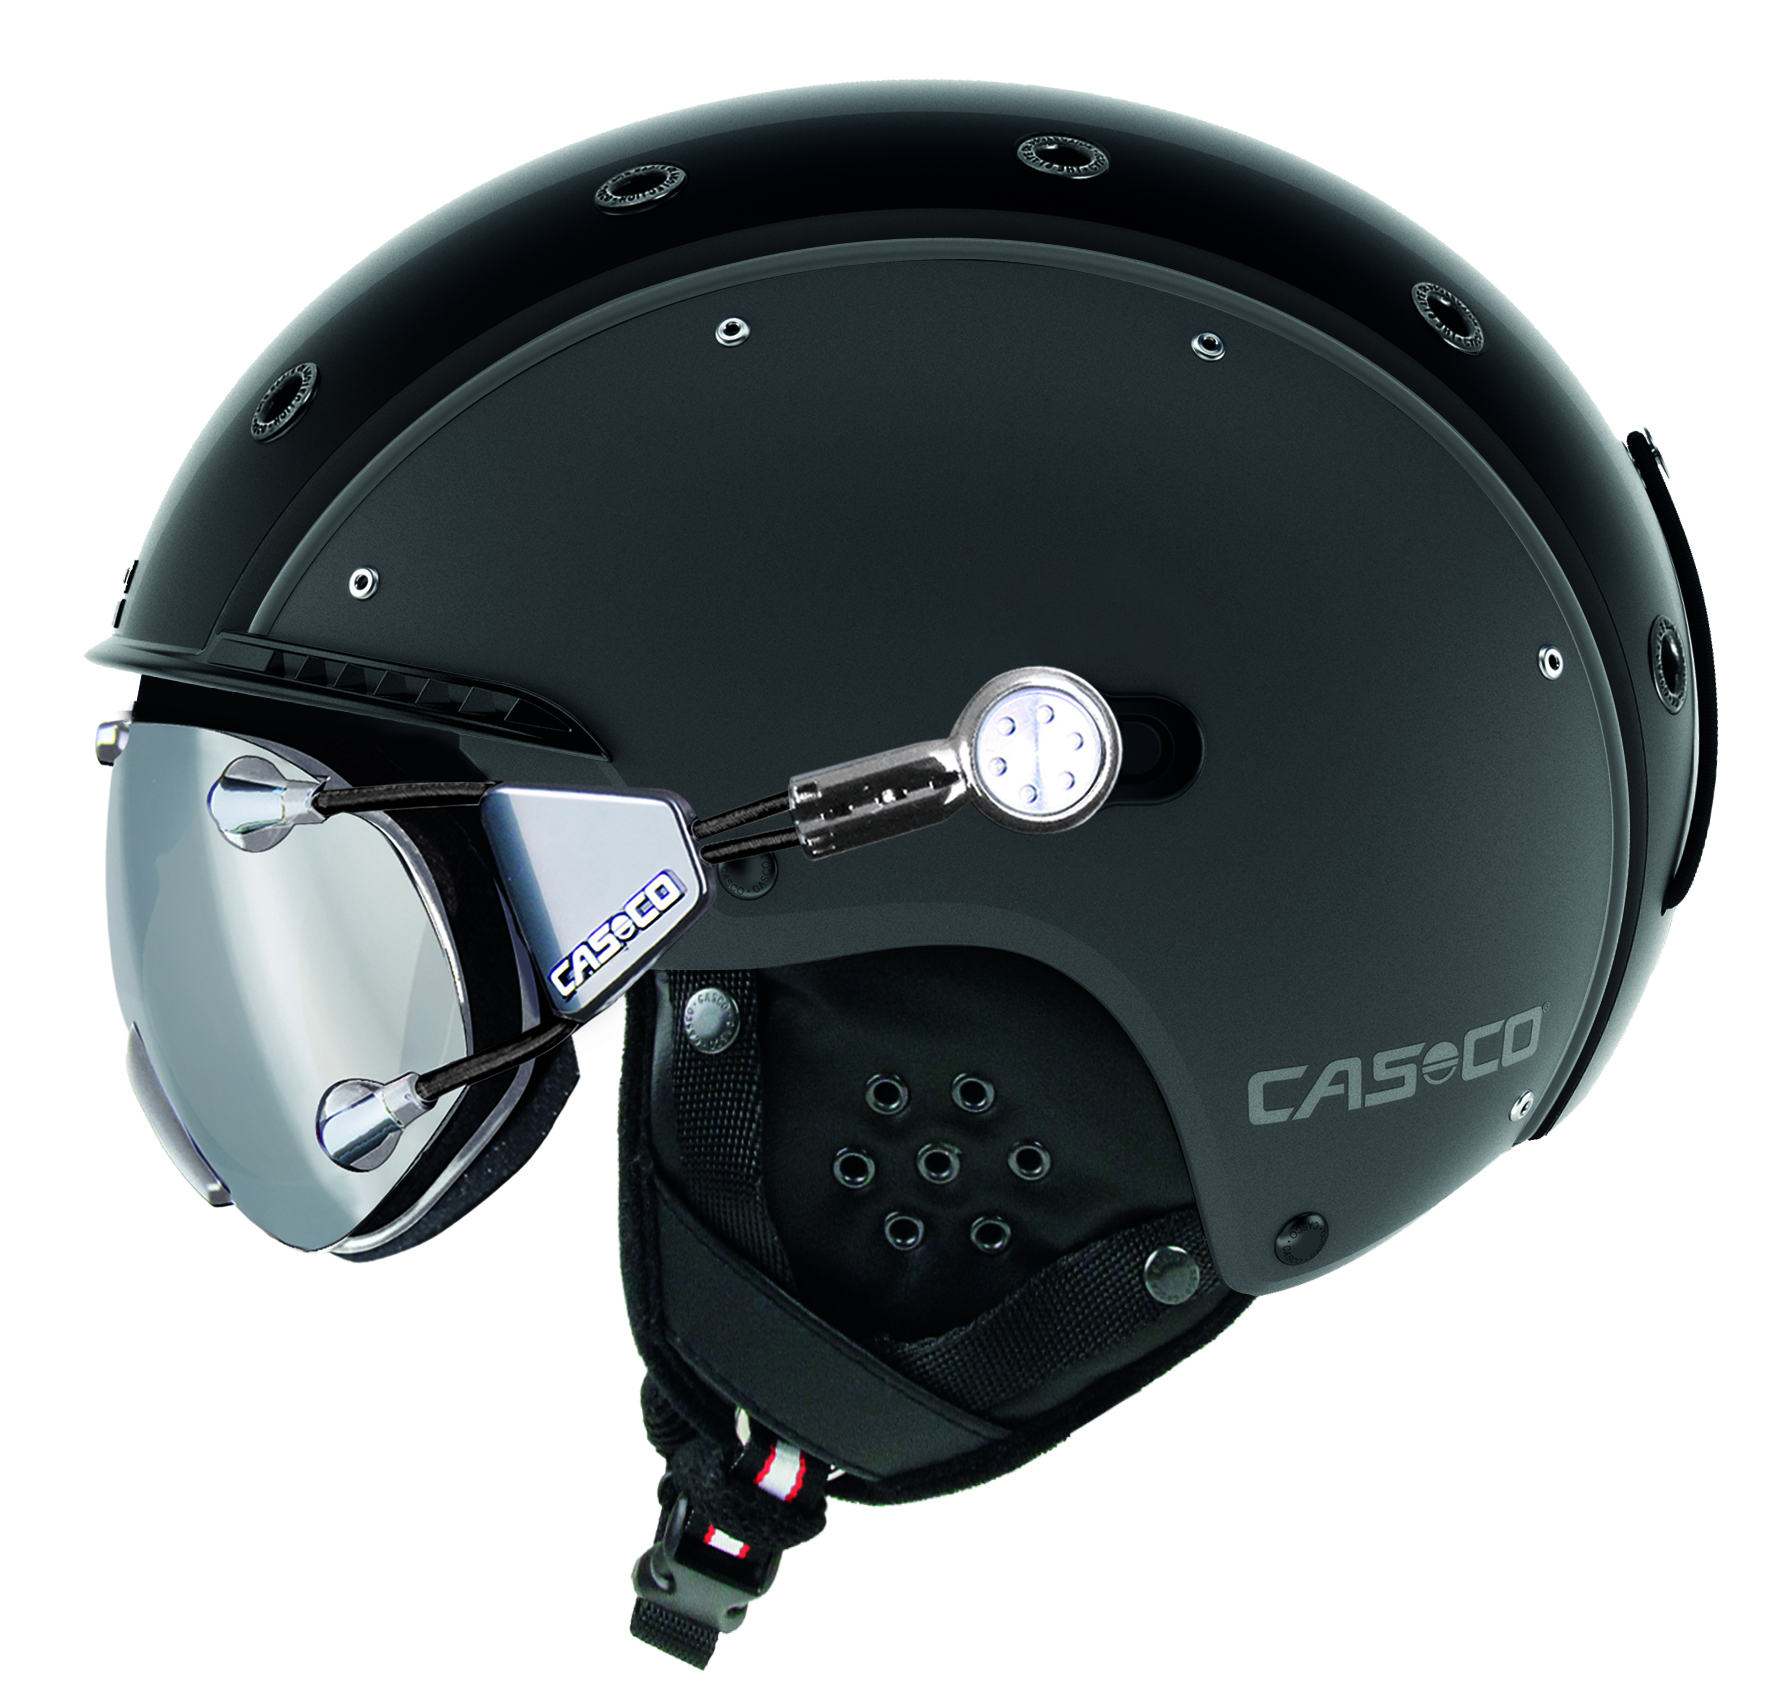 CASCO_SP3_Airwolfl_Side+FX70_Carbonic_Helm